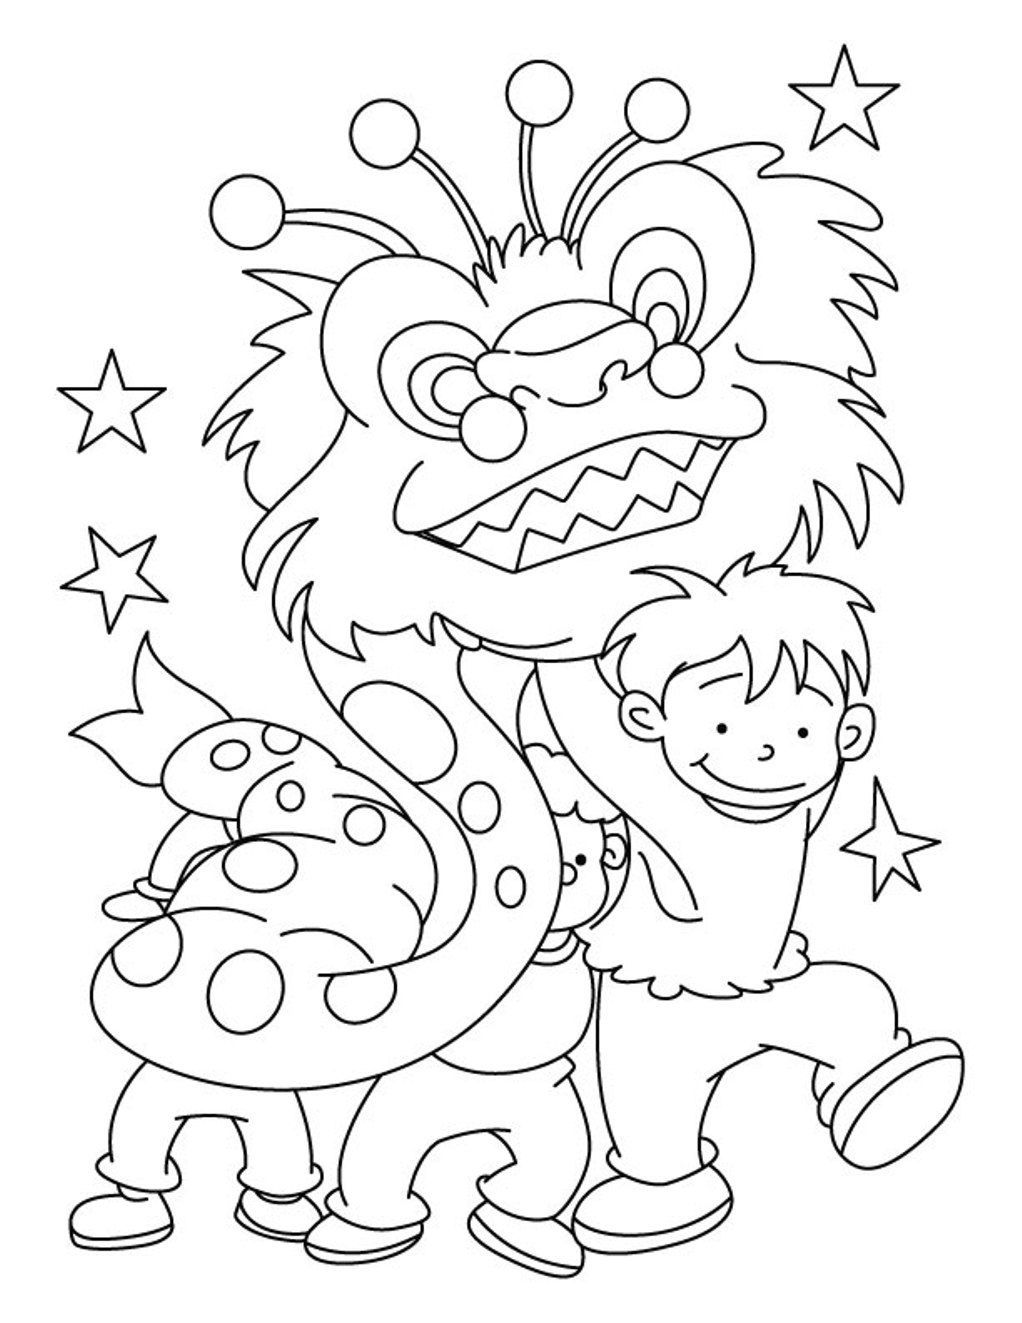 Chinese New Year Coloring Pages New Year Coloring Pages Chinese